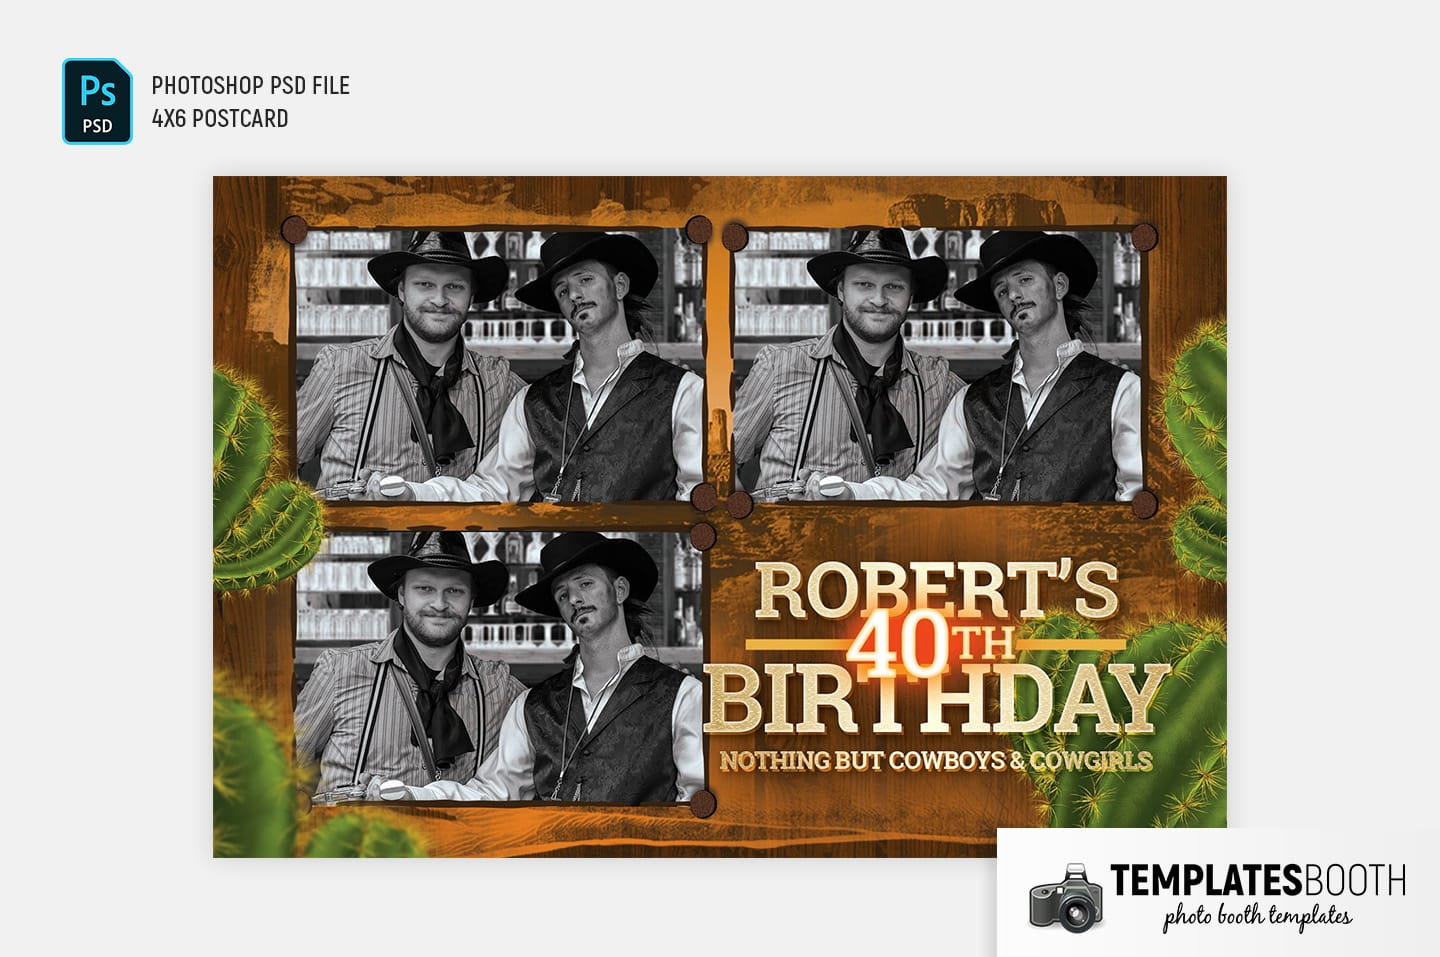 Country & Western Photo Booth Template (4x6 postcard landscape)